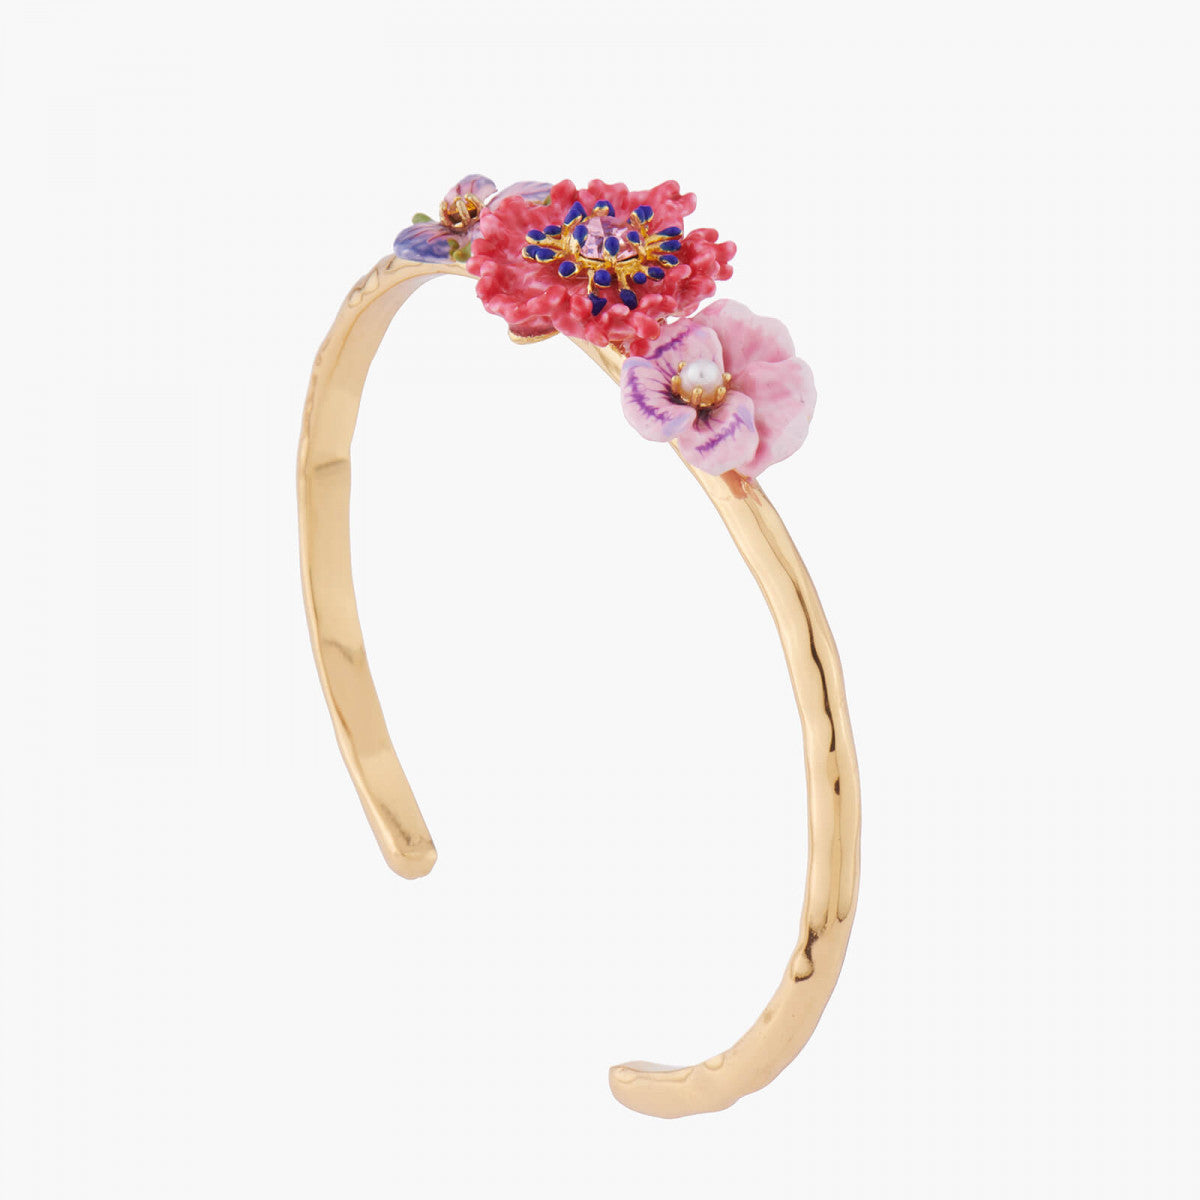 Violet, Carnation and Pansy Bangle Bracelet